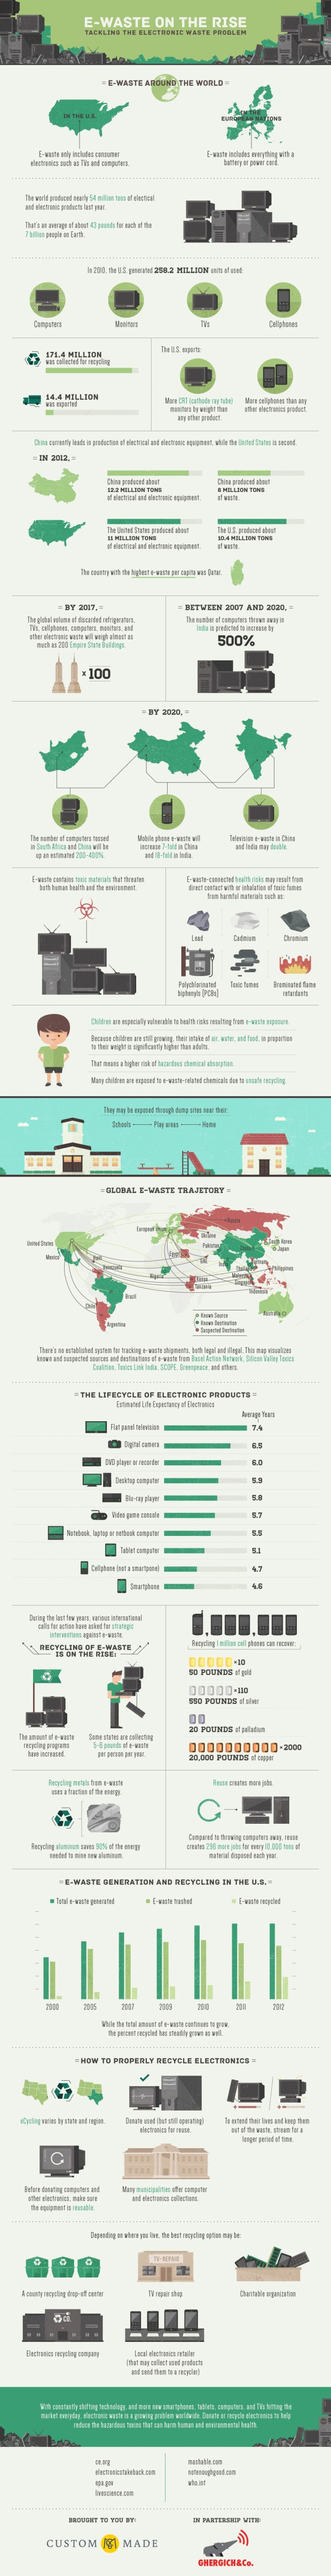 E-waste on the Rise